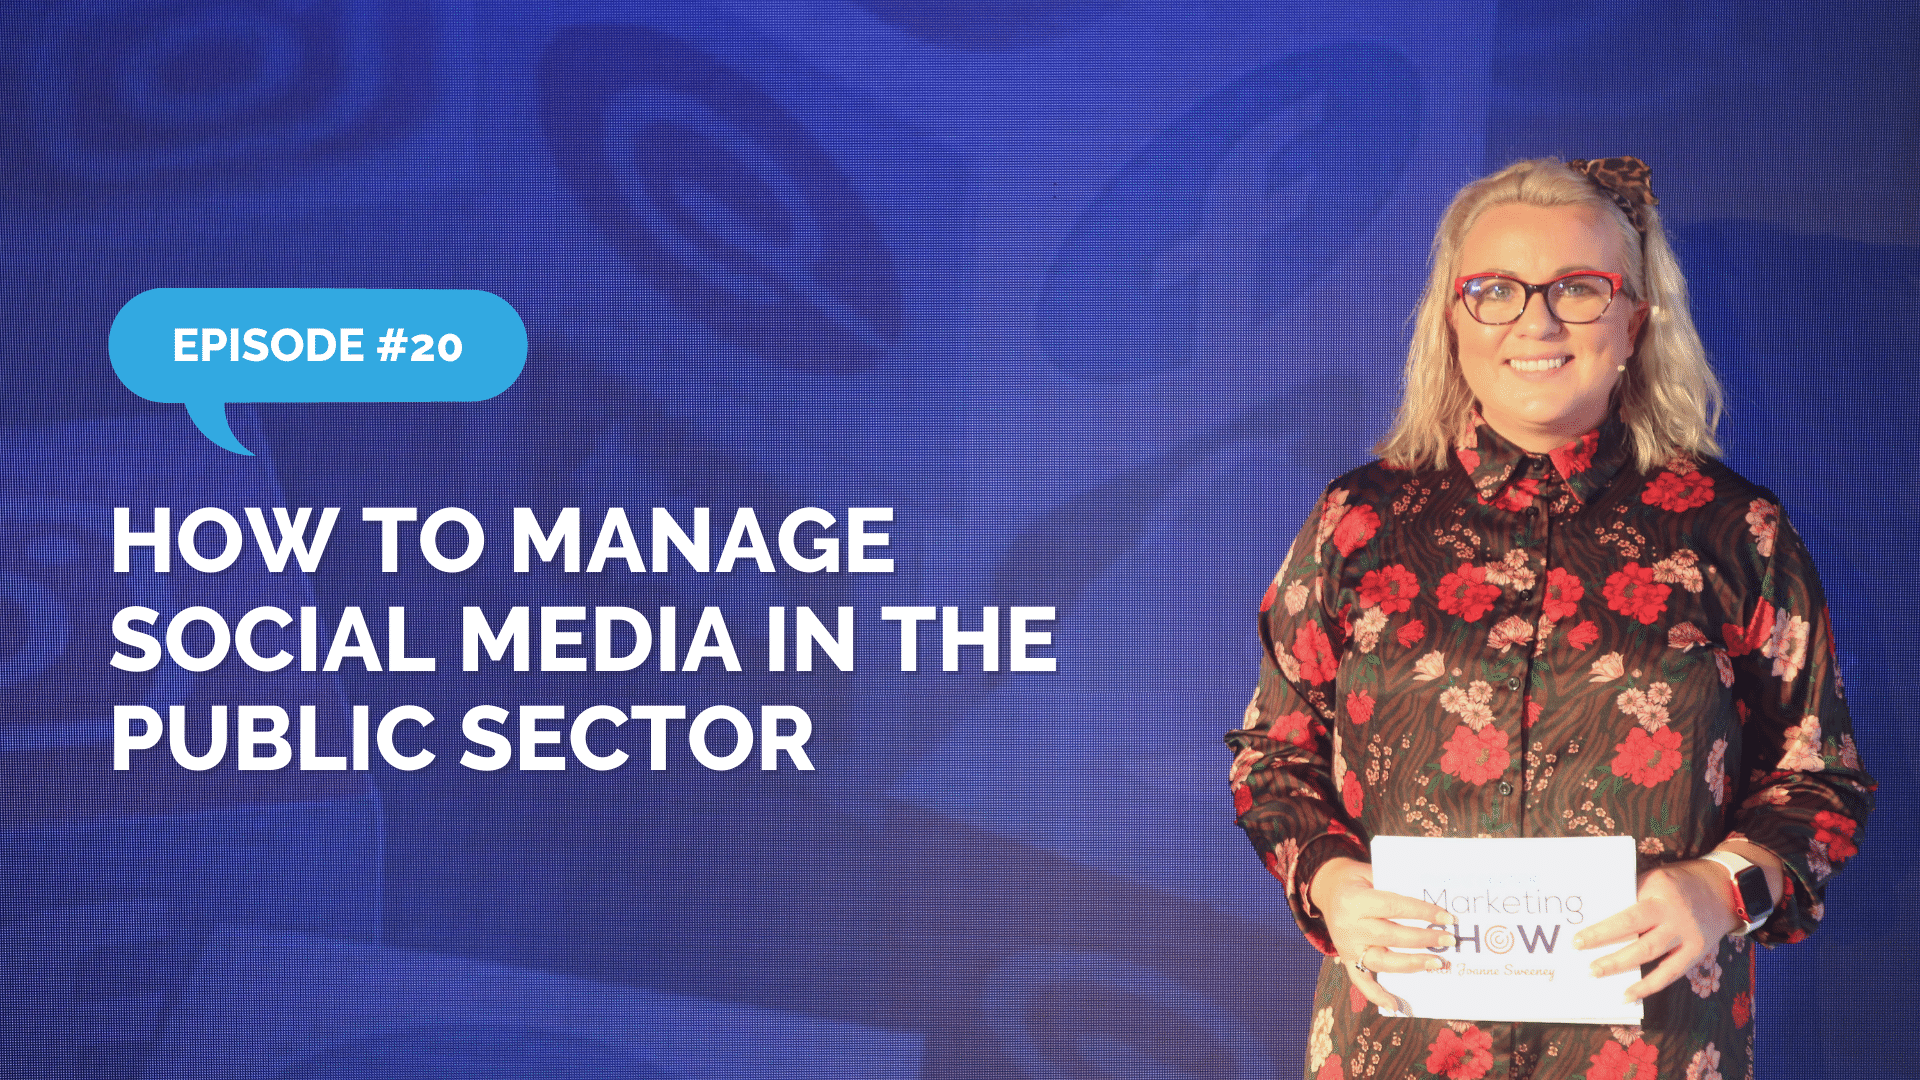 Episode 20 - How to Manage Social Media in the Public Sector